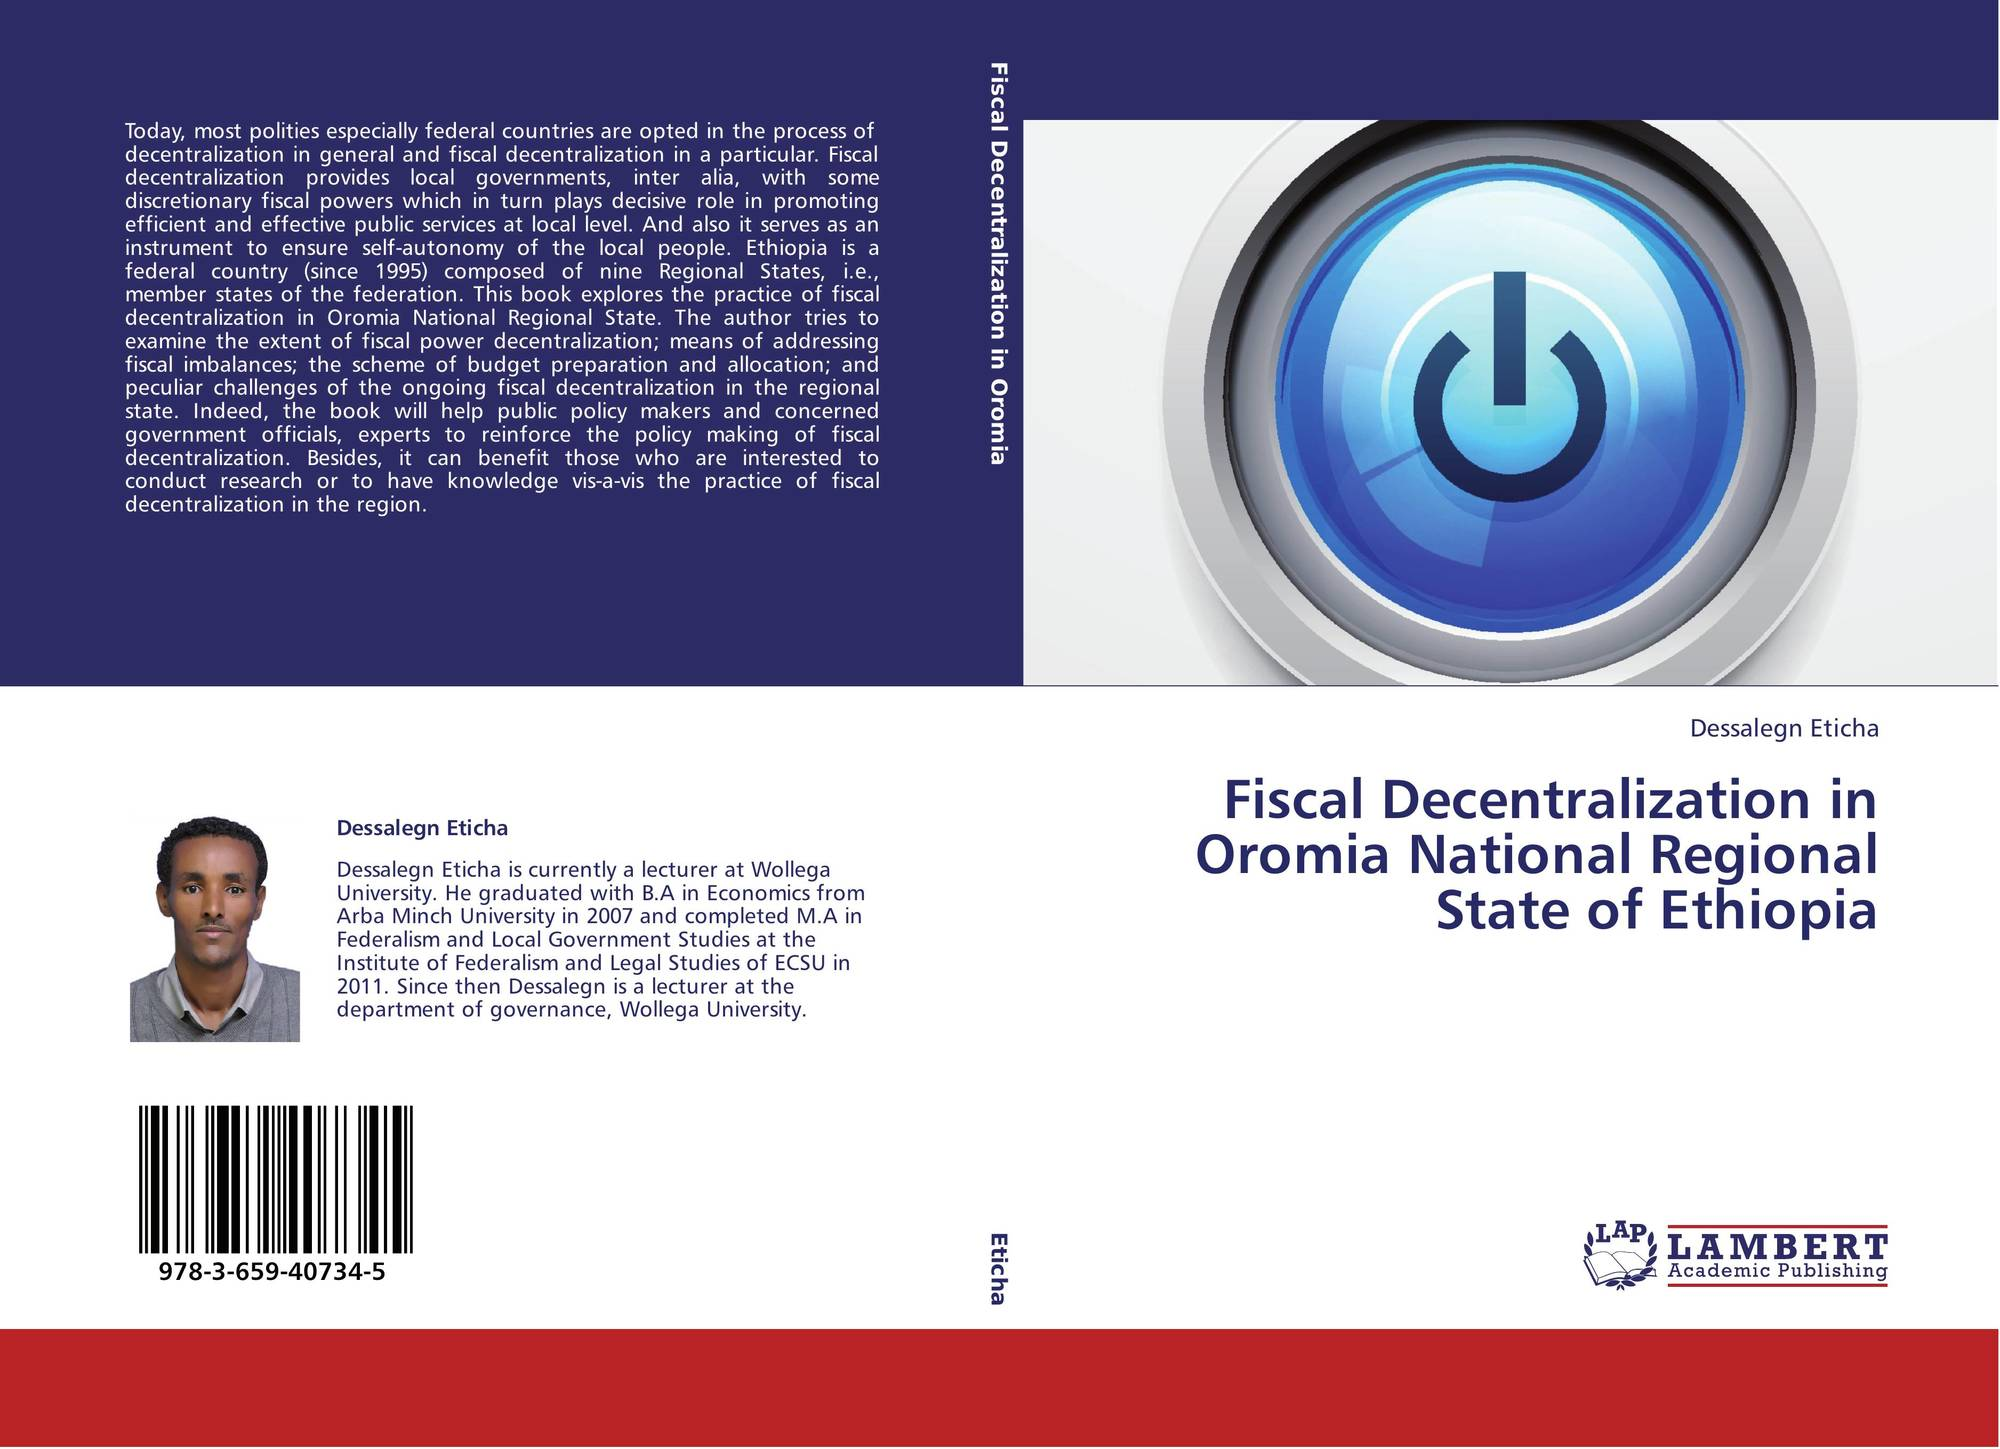 Fiscal Decentralization in Oromia National Regional State of